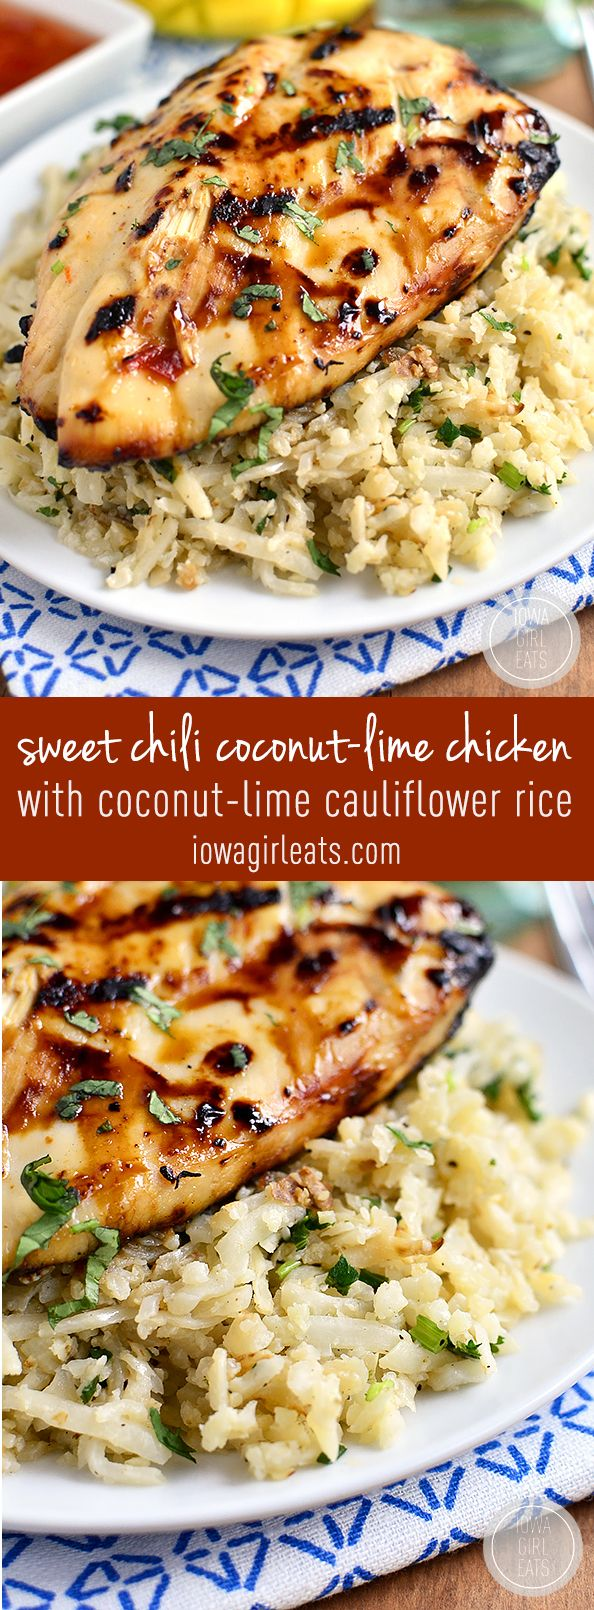 Sweet Chili Coconut-Lime Grilled Chicken with Coconut-Lime Cauliflower Rice is a light and refreshing grilled dinner. Simple and scrumptious! #glutenfree | iowagirleats.com